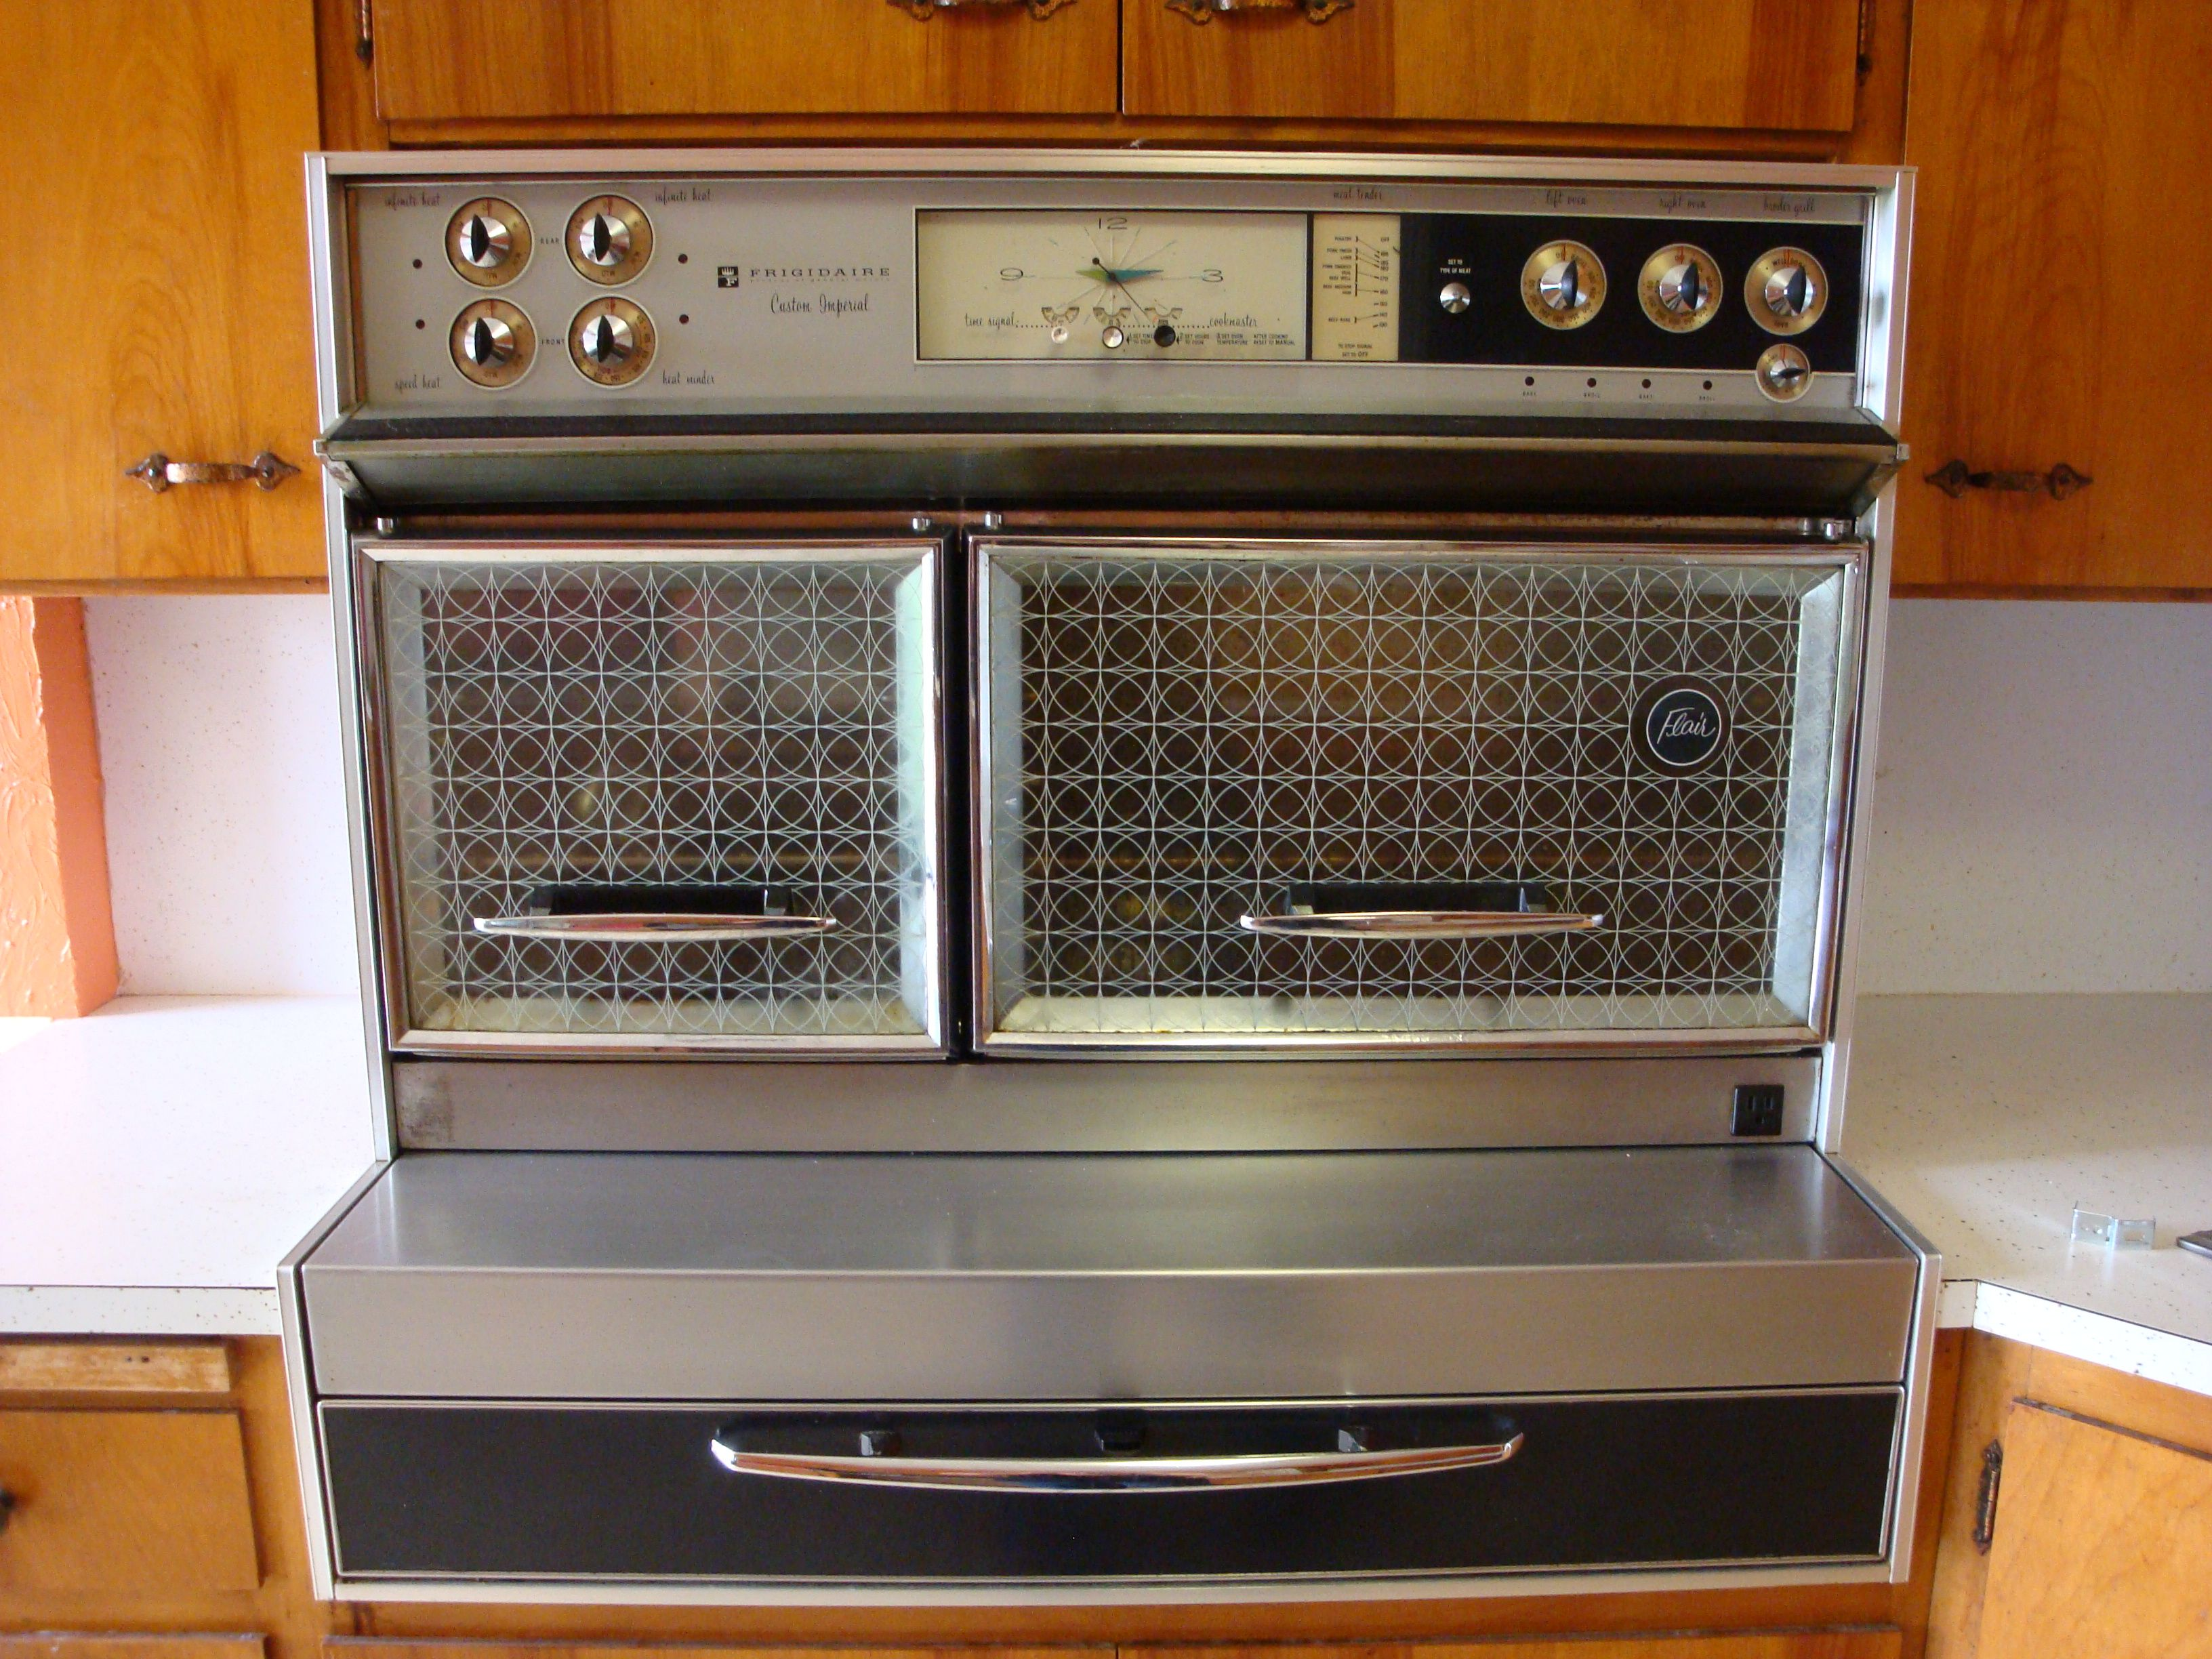 Old Tappan 400 Stove Oven Wiring Diagram Hotpoint Frigidaire Schematic Diagrams On